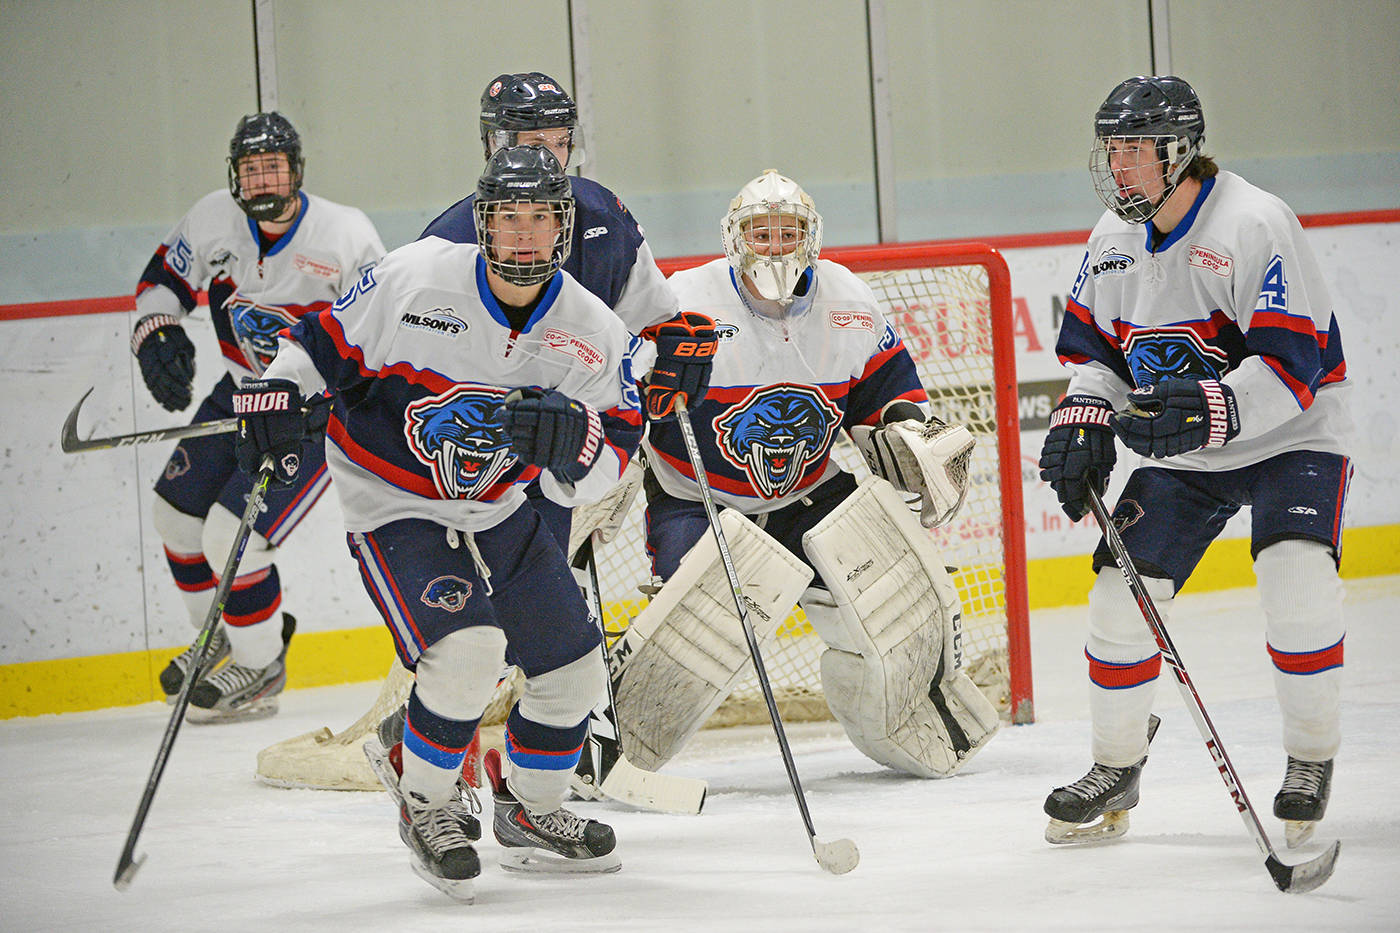 The Peninsula Panthers in North Saanich made full face protection mandatory this season. BC Hockey is now extending that level of face coverage to all of the Junior B hockey teams in the province. (Gordon Lee Photography)